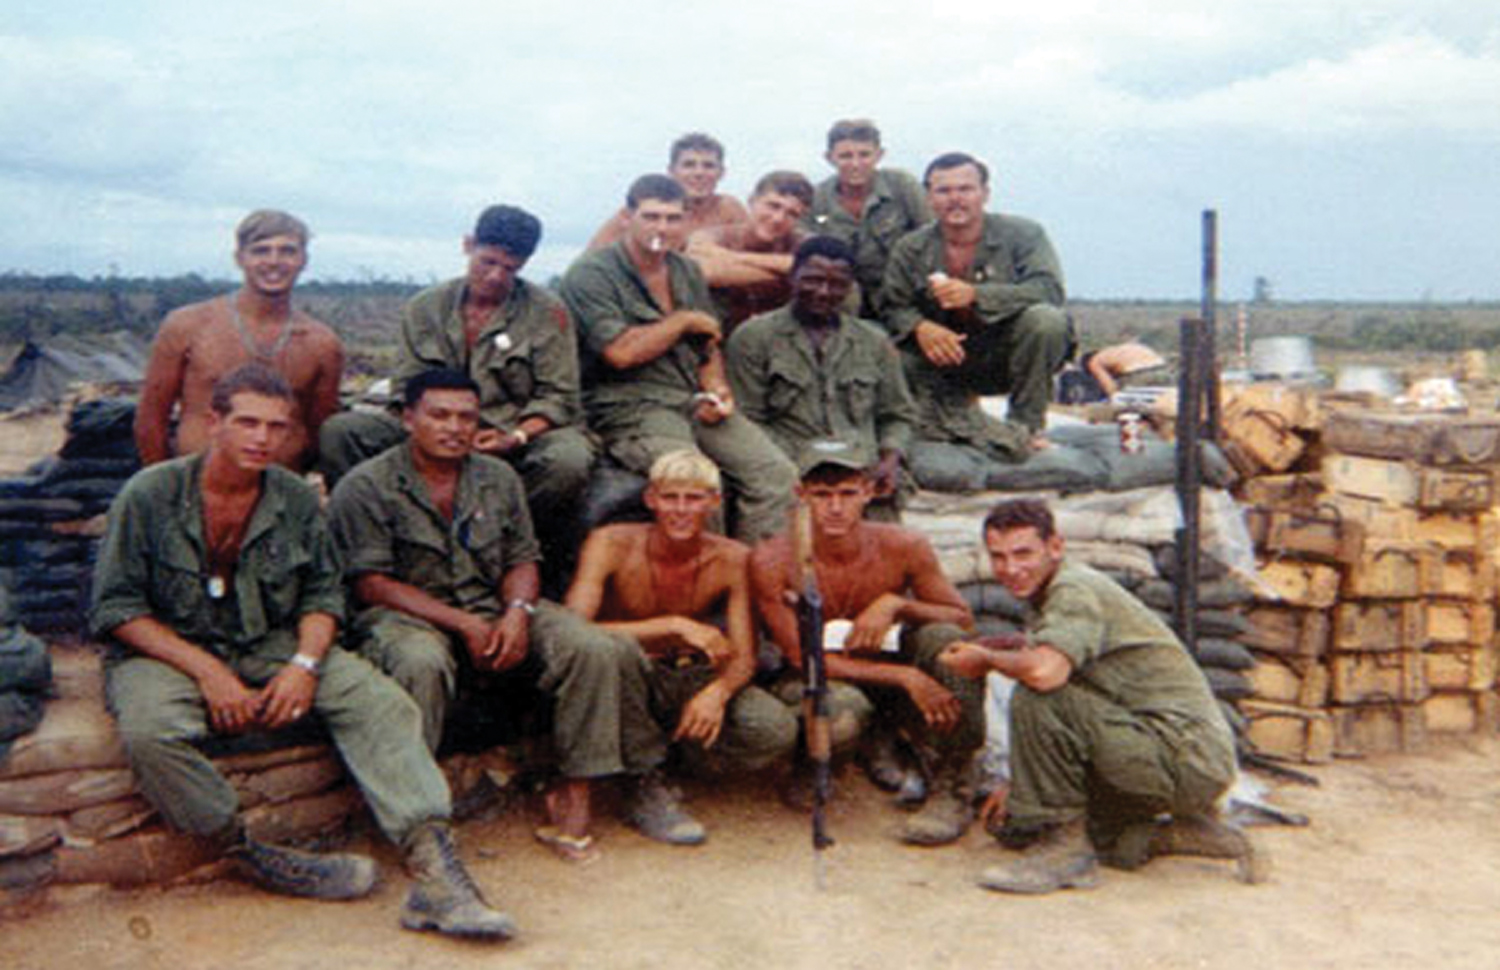 a description of american involvement in the vietnam war The role of the united states in the vietnam war began after world war ii and escalated into full commitment during the vietnam war from 1955 to 1975 the us .